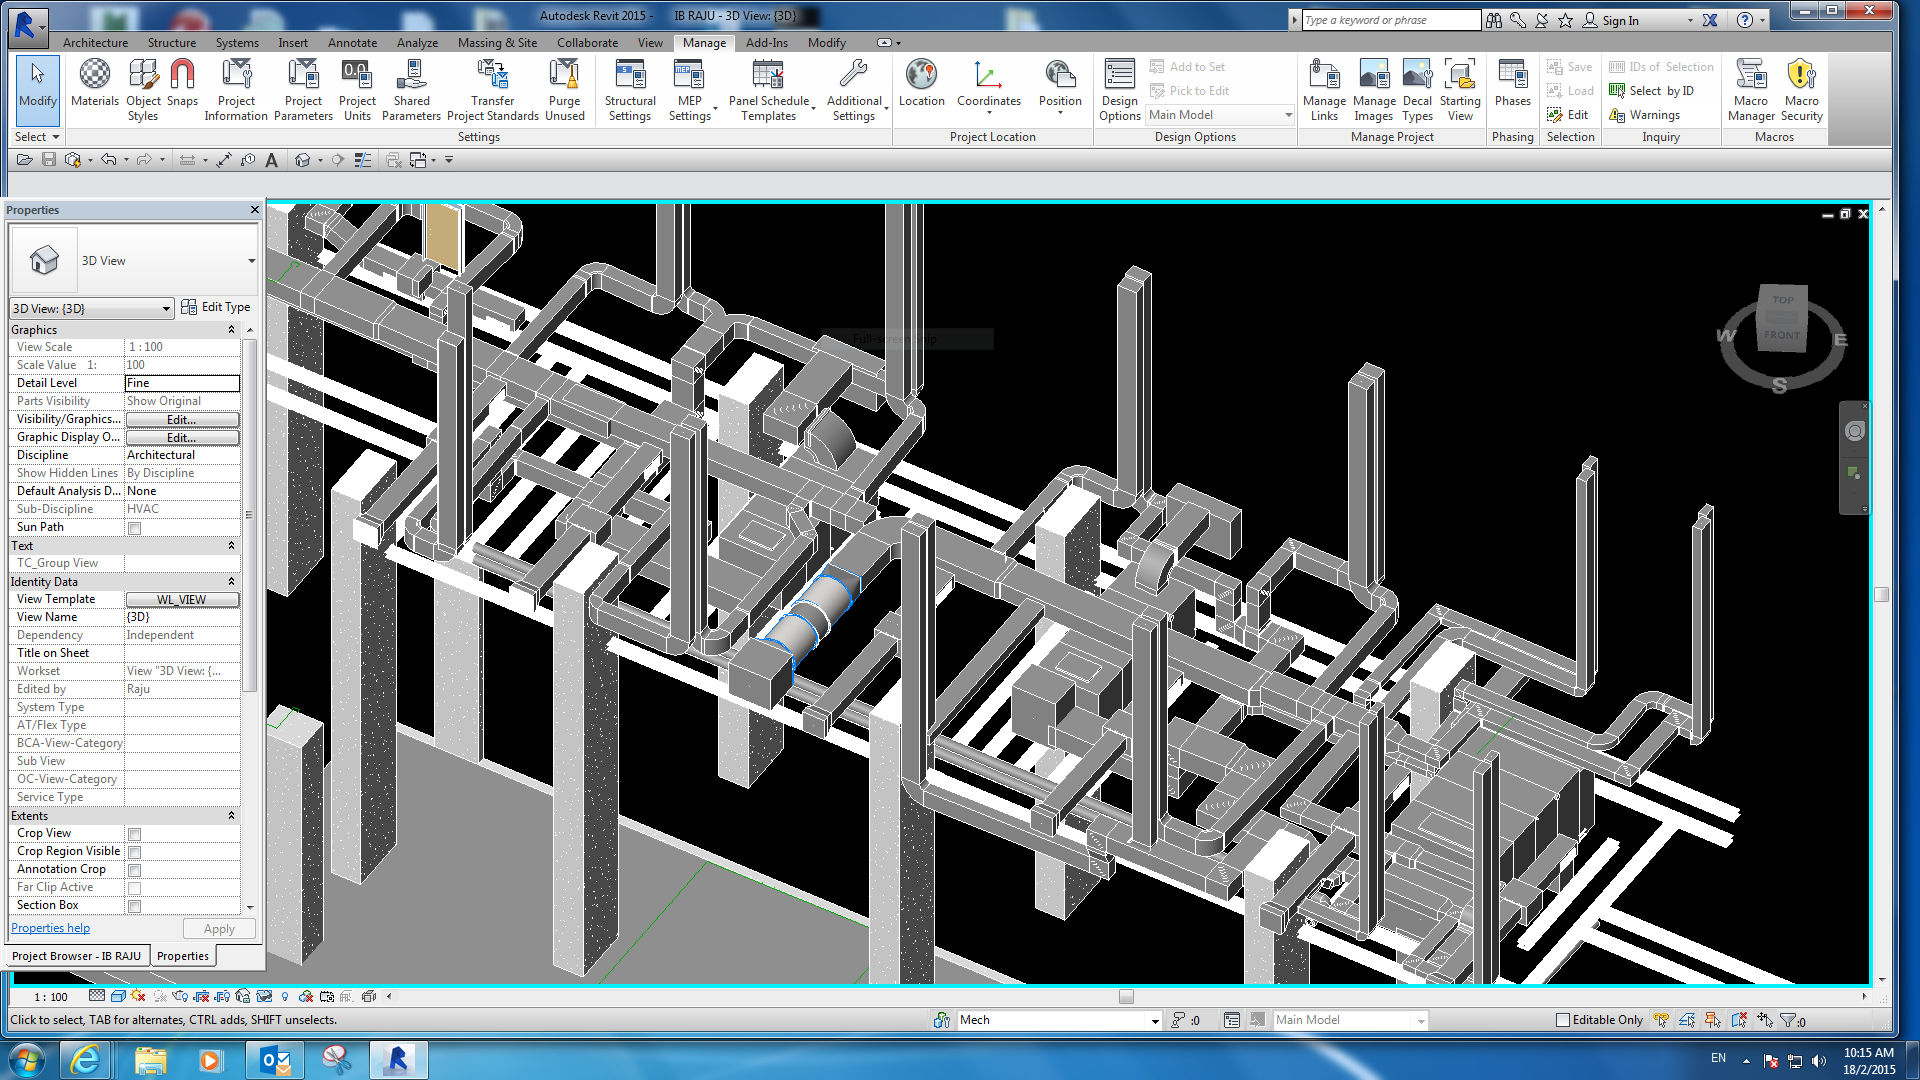 Solved Duct Piping Colour Change Autodesk Community Revit Layout Autocad Isometric Drawing 3d Sketch Cad Mechanical Design Engineering Learn Technical Models Cam Orthographic